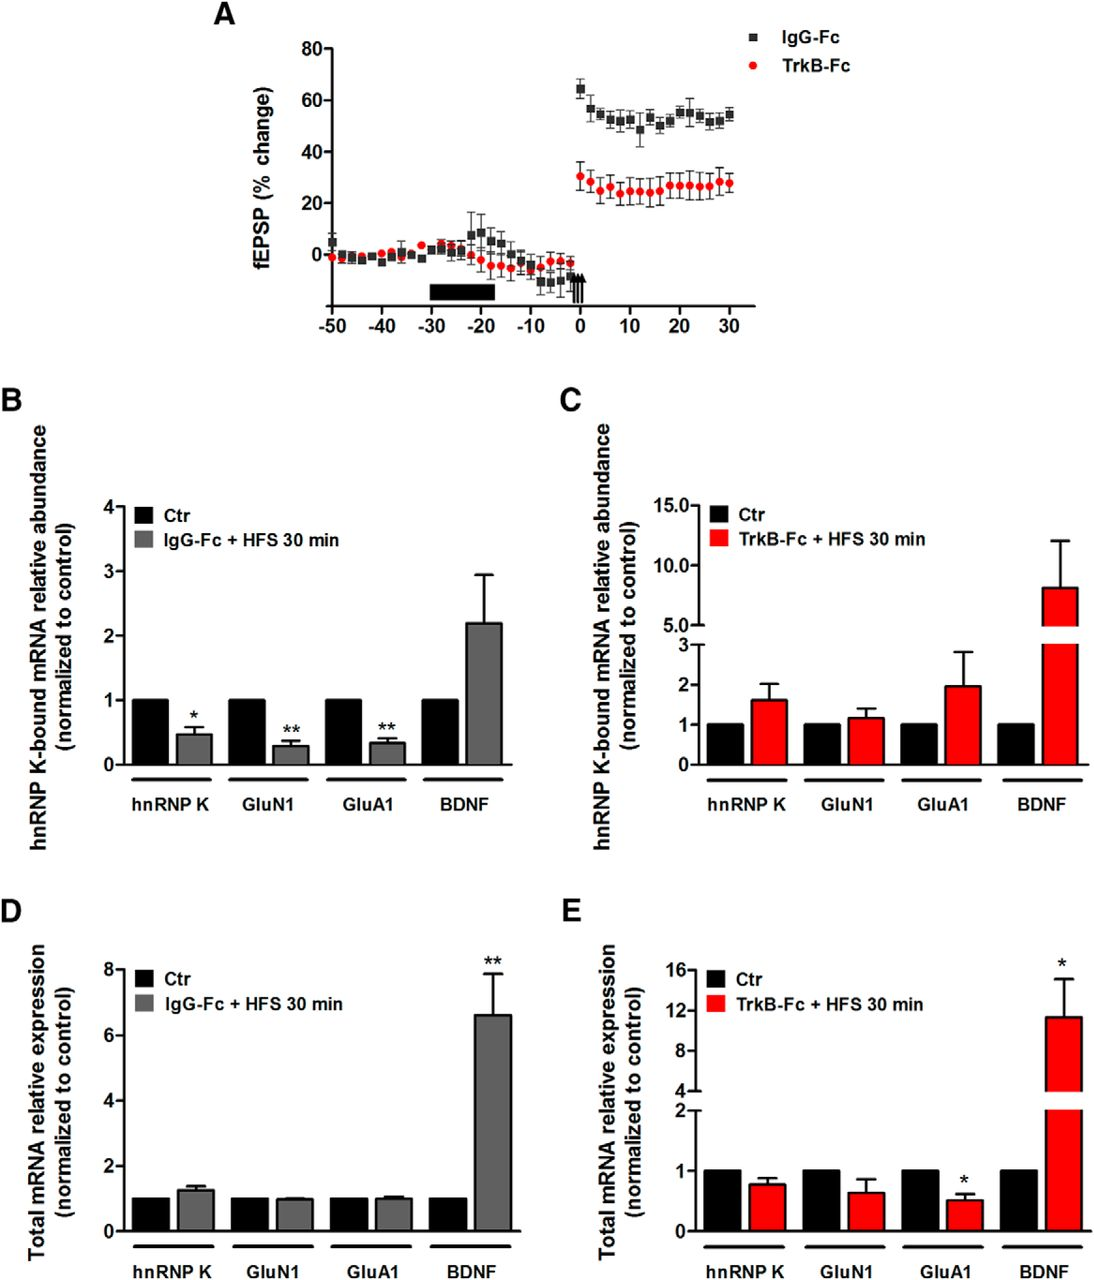 The RNA-Binding Protein hnRNP K Mediates the Effect of